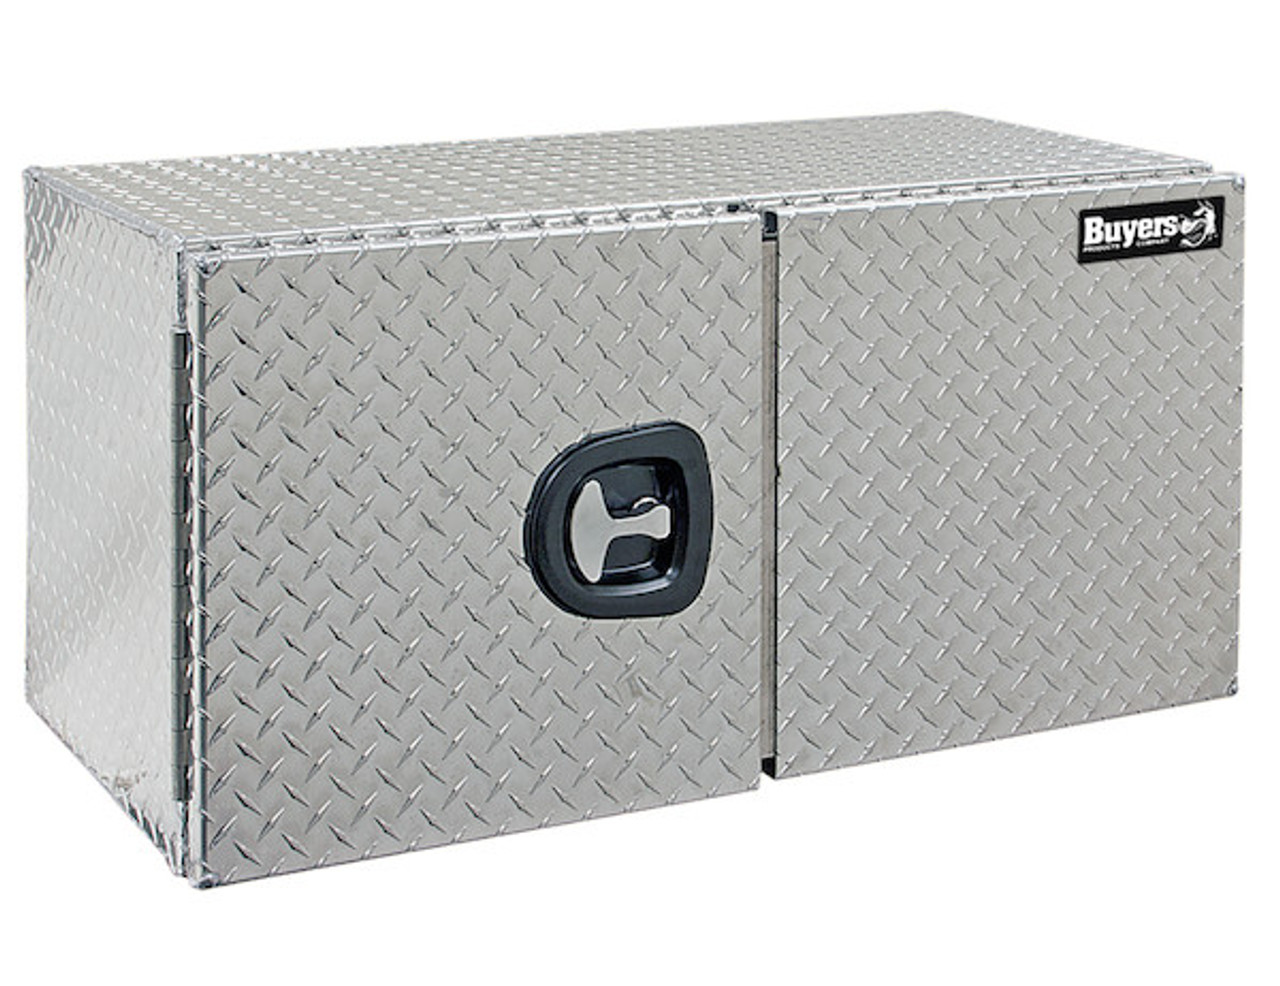 "1702240 BUYERS PRODUCTS DIAMOND TREAD ALUMINUM UNDERBODY TRUCK TOOLBOX WITH BARN DOOR 24""HX24""DX48""W"